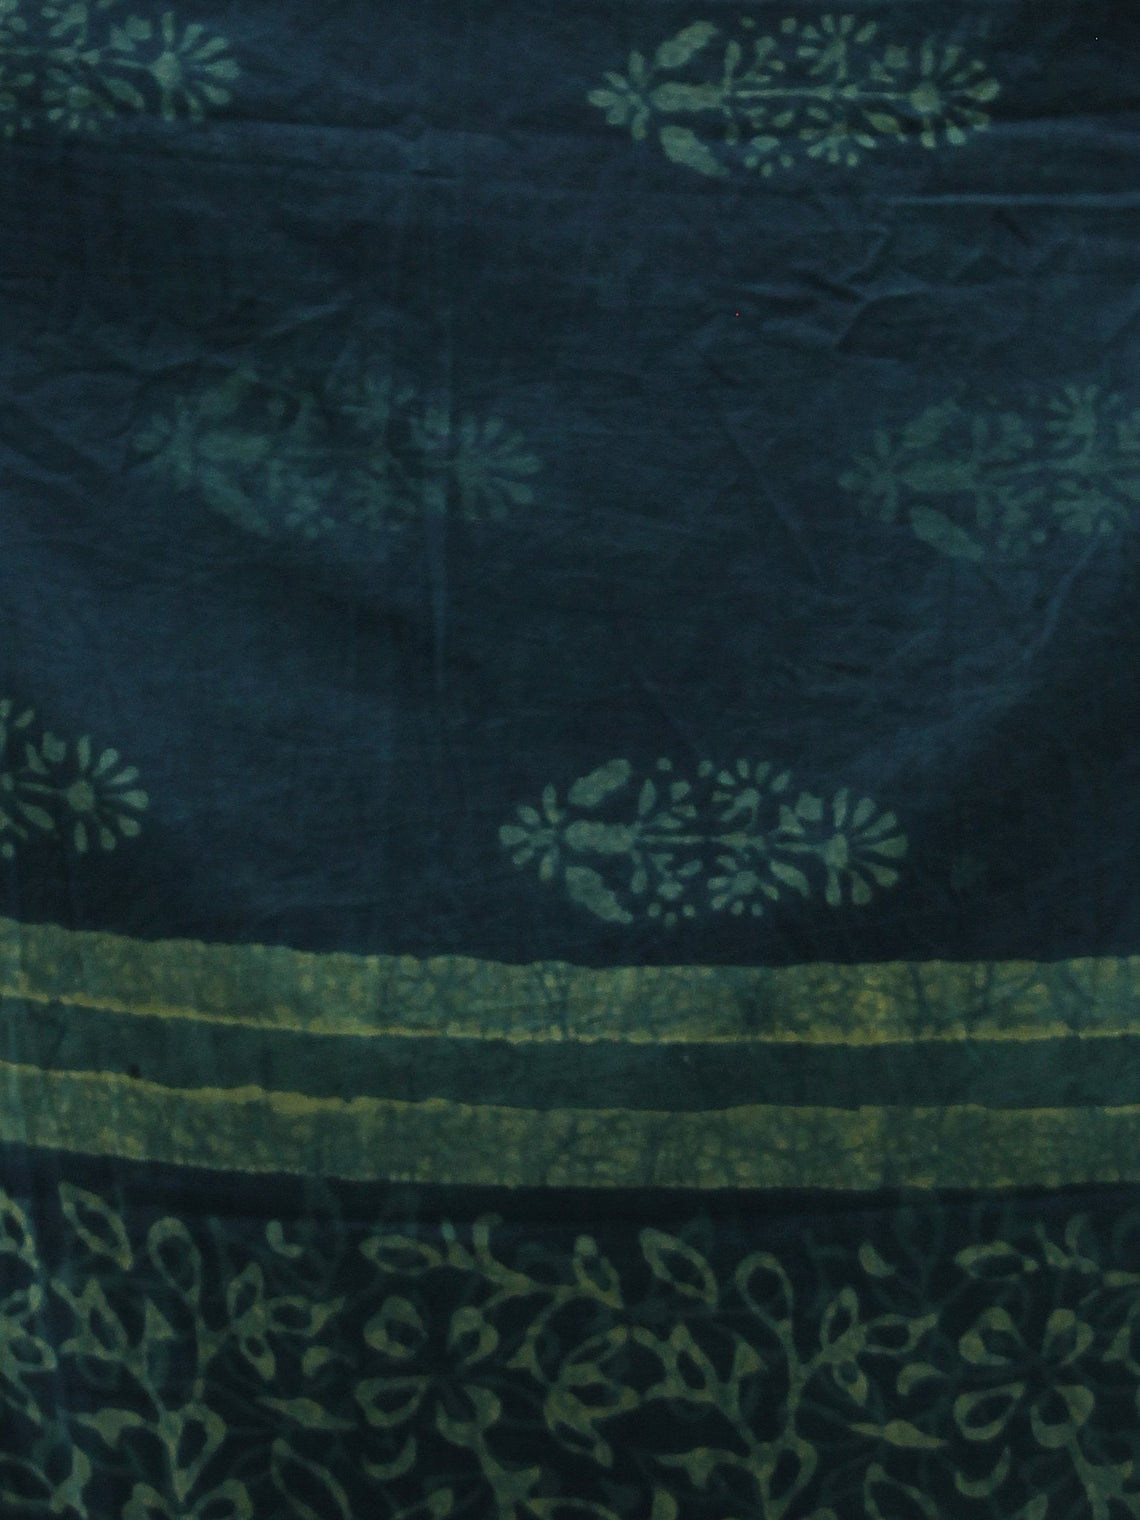 Deep Indigo Green Handloom Cotton Hand Block Printed Dupatta with Lace Border - D04170392